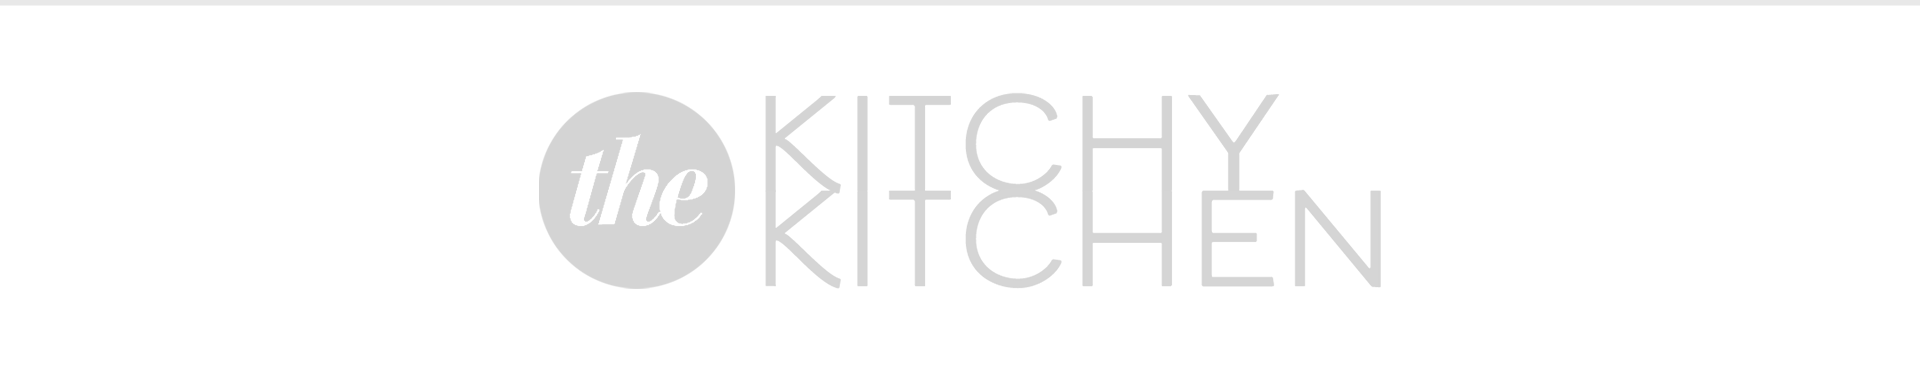 kitchy-kitchen-footer